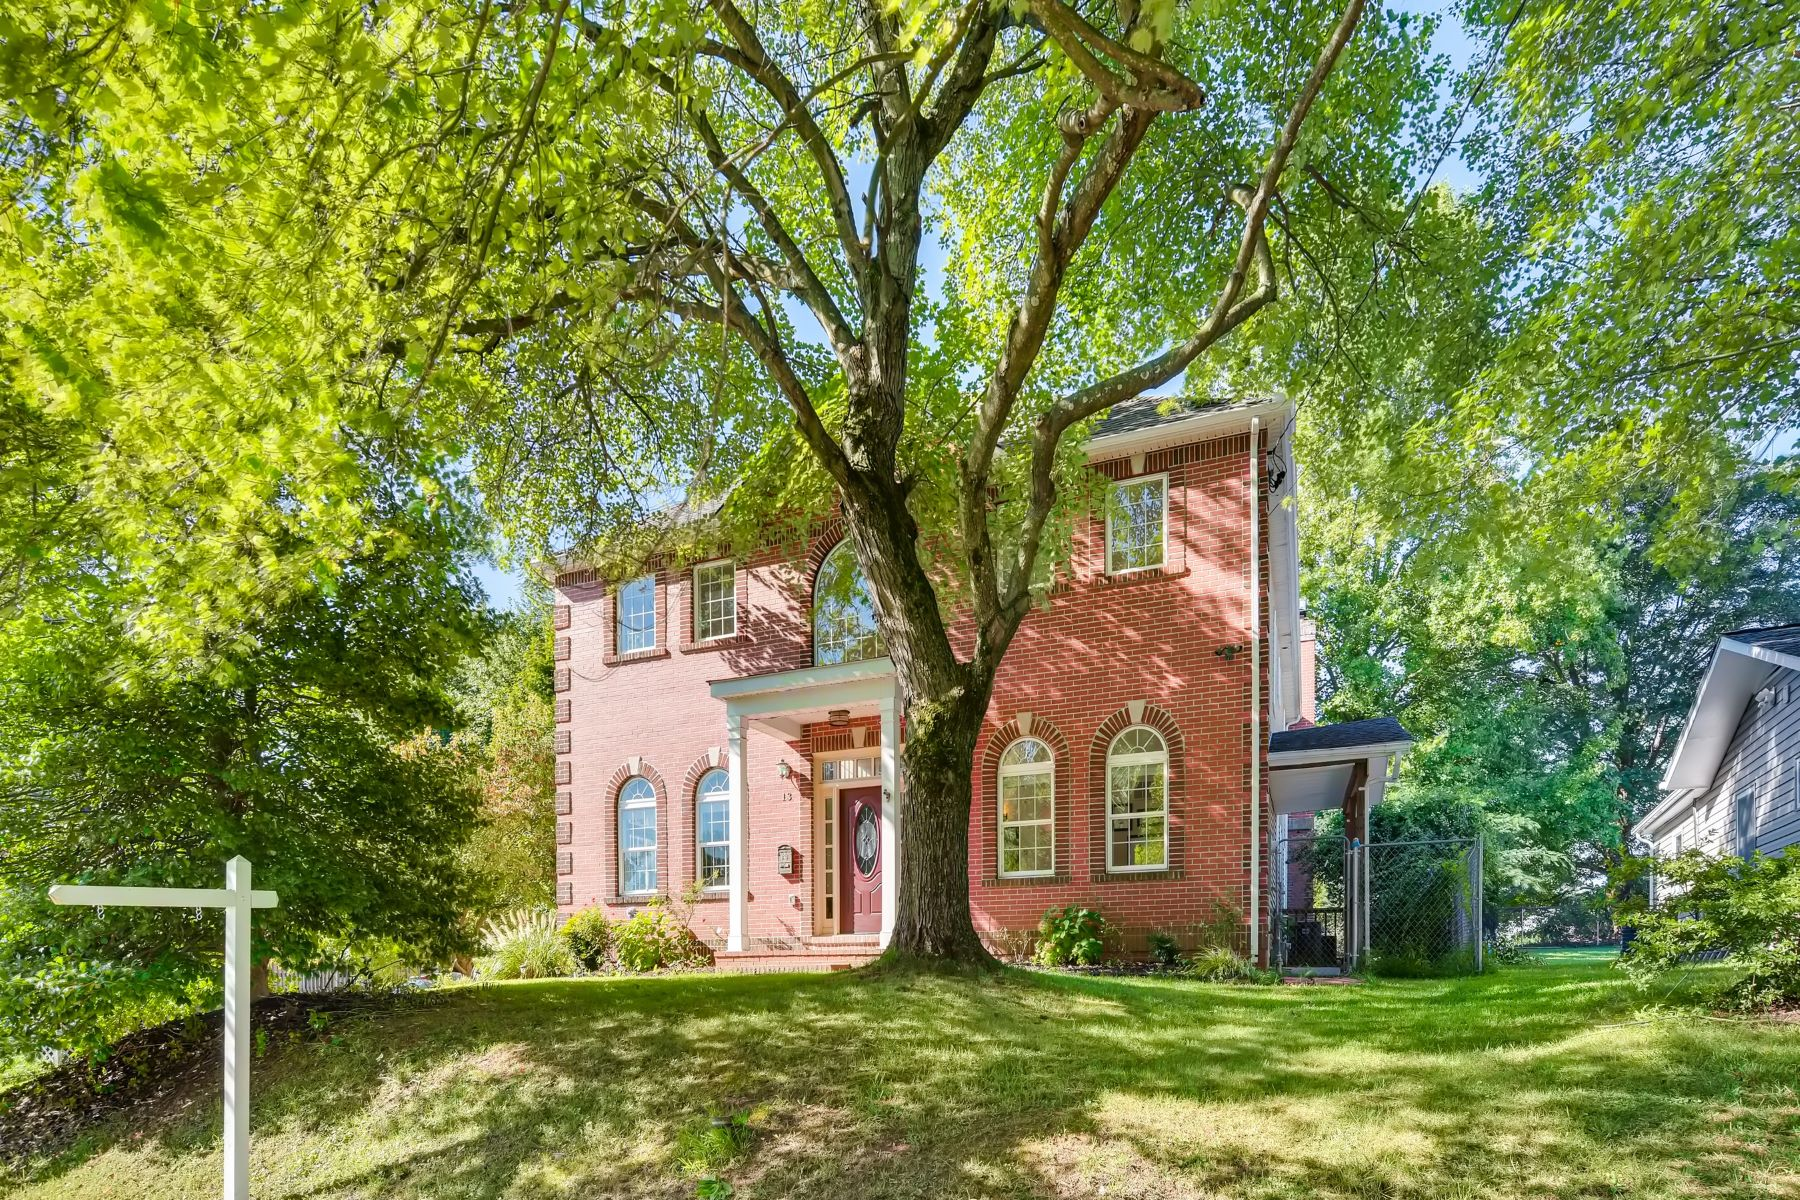 Single Family Homes for Sale at 13 Tollgate Road Owings Mills, Maryland 21117 United States